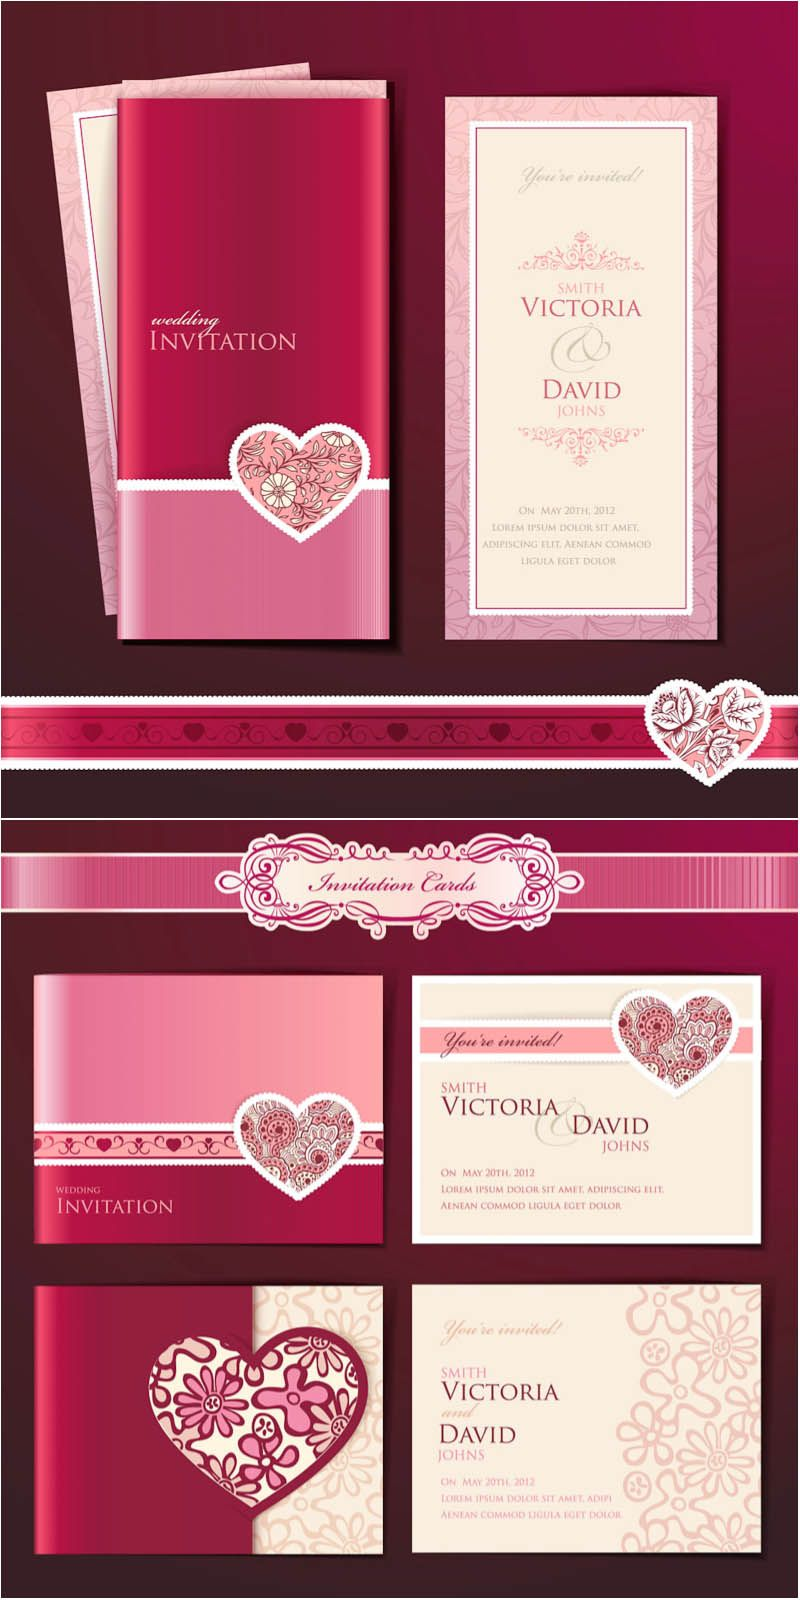 Wedding invitation cards vector. We have over 10,000+ pictures. All ...